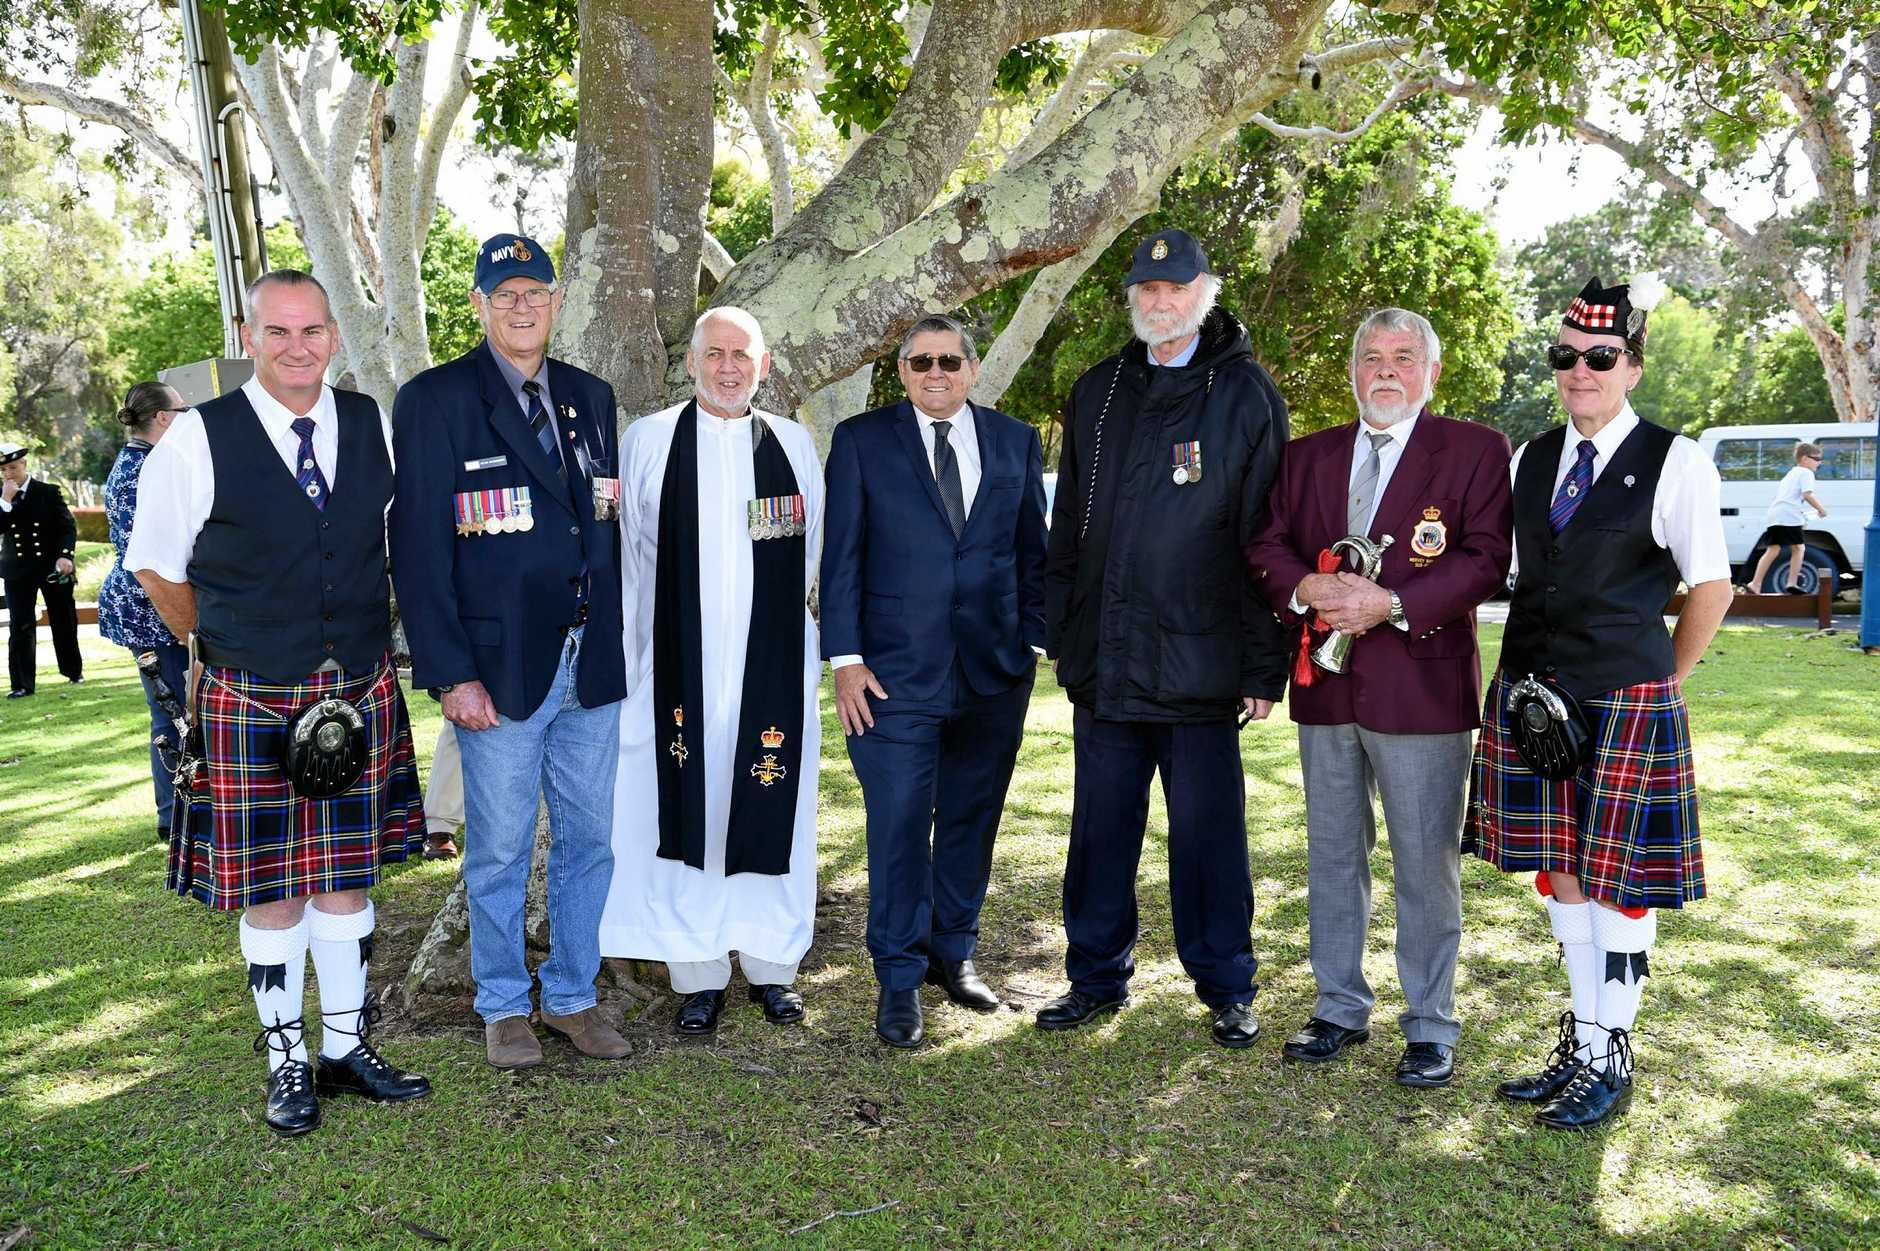 TRAGIC LOSS: Hugh McBroom, Peter McDermott, Jeff Jarvis, Ted Sorensen, John Holmes, Geoff Harper and Belinda McBroom at the Operation Rimau service at the Krait Memorial.